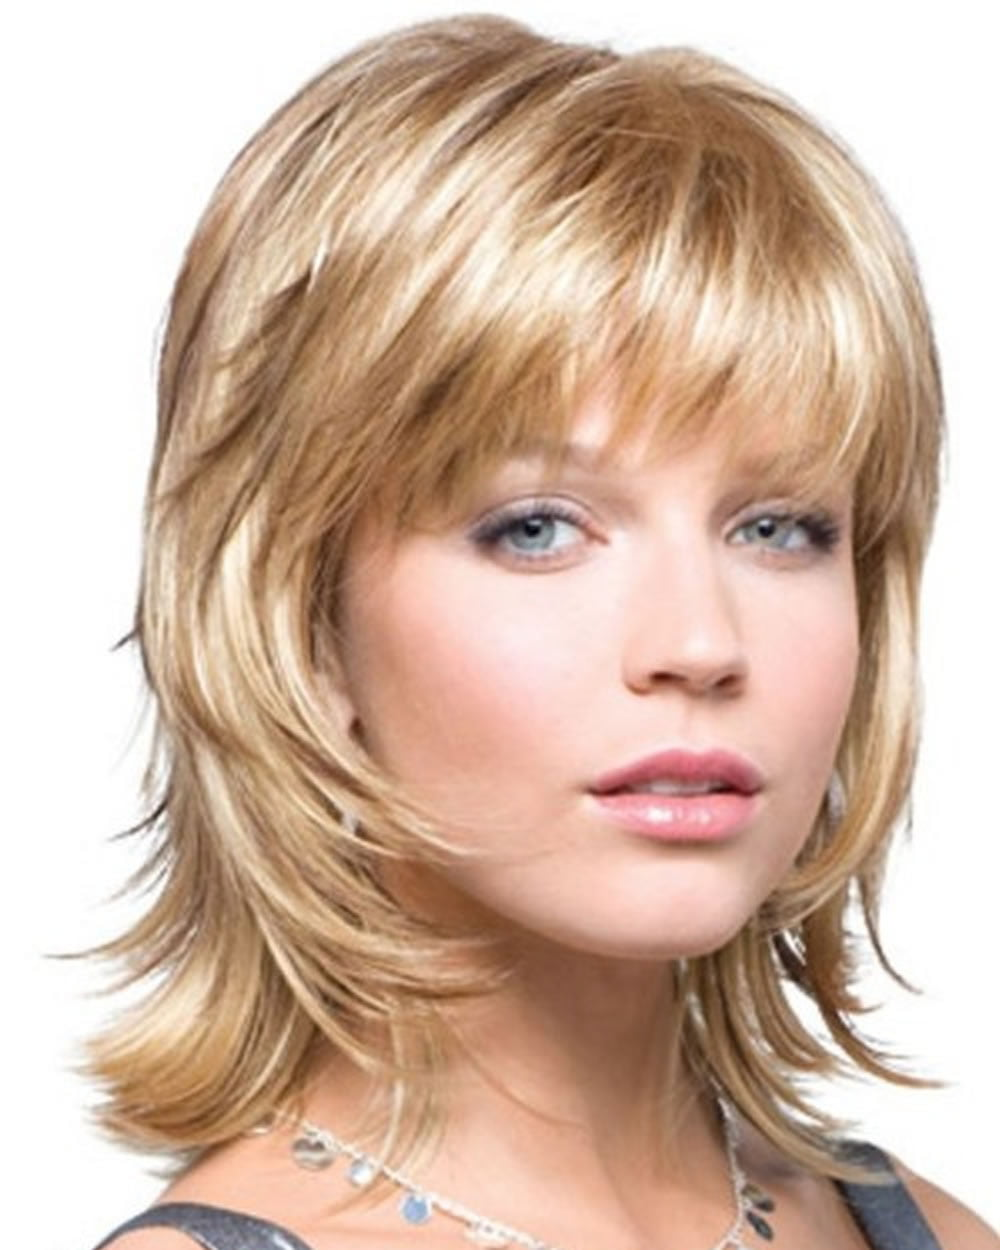 22 Cool Shag Hairstyles for Fine Hair 20182019  Page 7  HAIRSTYLES